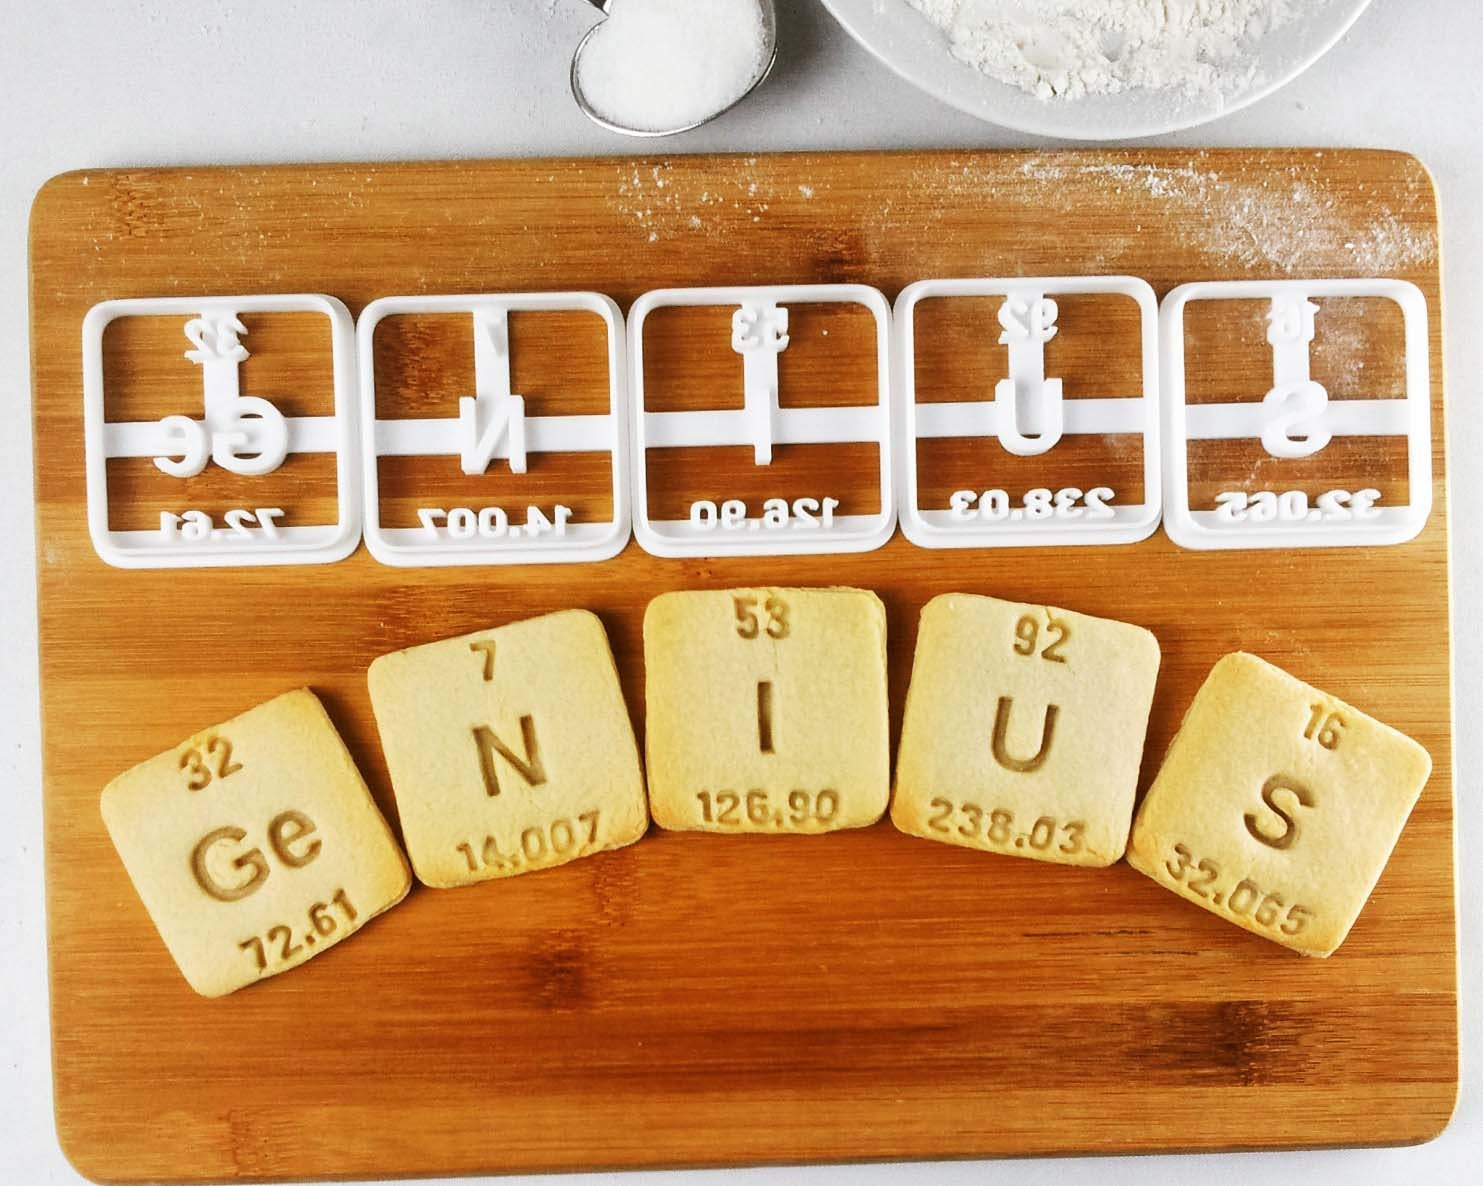 Genius and nerdy cookie cutters periodic table elements inspired genius and nerdy cookie cutters periodic table elements inspired germanium nitrogen iodine uranium sulfur with atomic number weight urtaz Choice Image